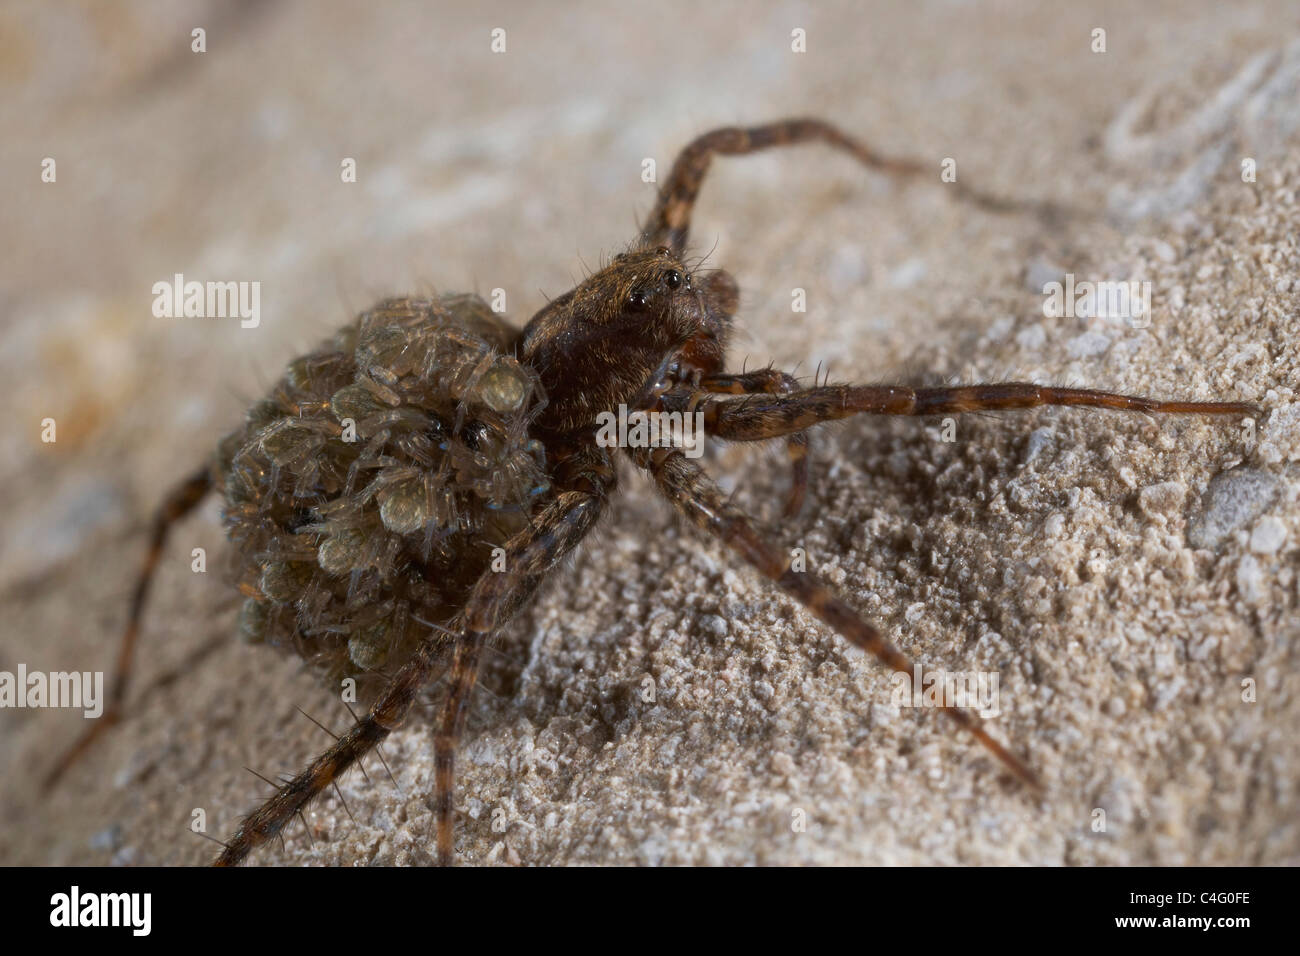 Female Wolf spider, Pardosa amentata carrying her newly hatched young on her back, Nichols Moss, Cumbria, UK - Stock Image